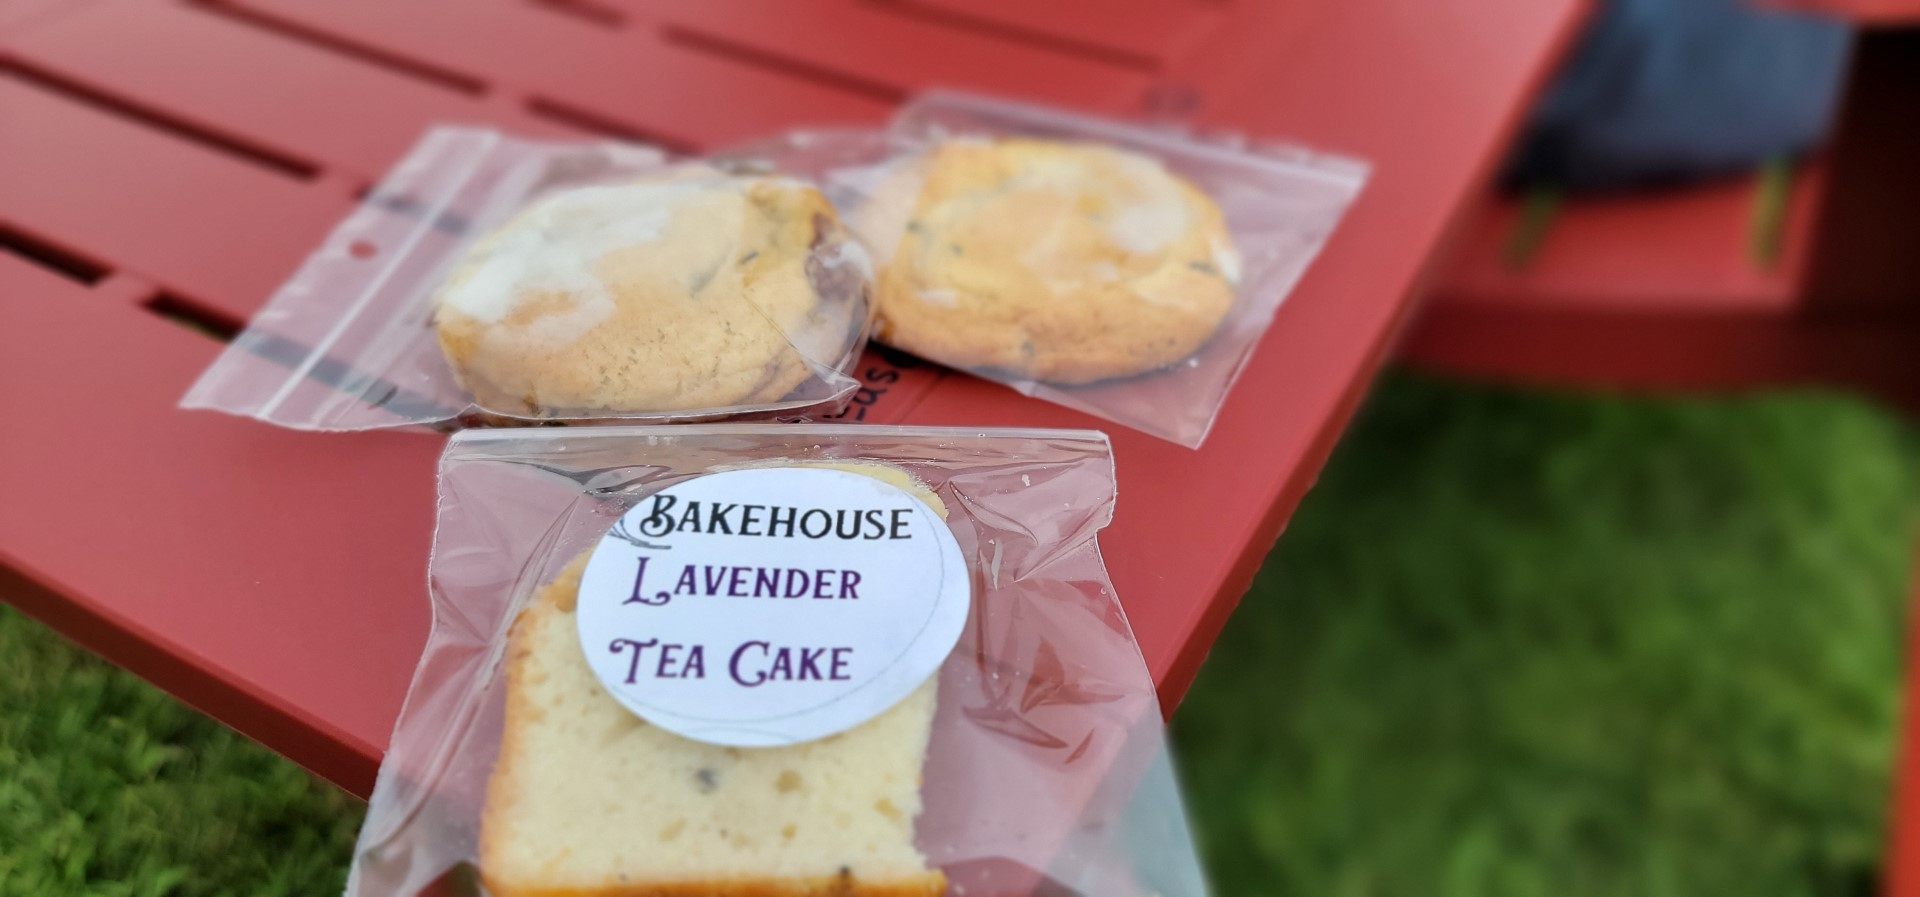 bakehouse treats at lavender farm on red table